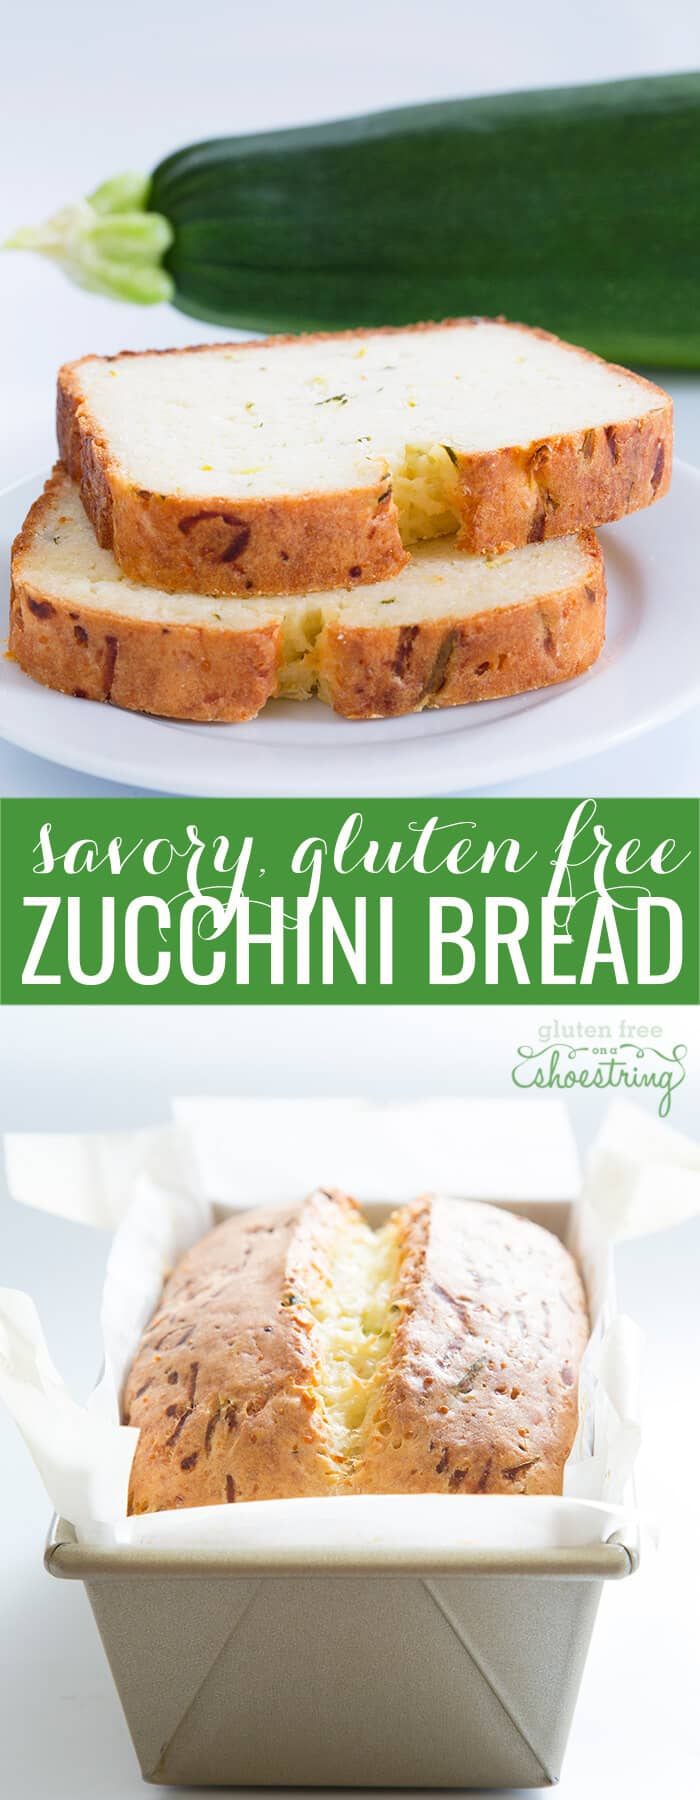 A stack of 2 slices of zucchini bread on a white plate and the loaf of zucchini bread in the loaf pan below